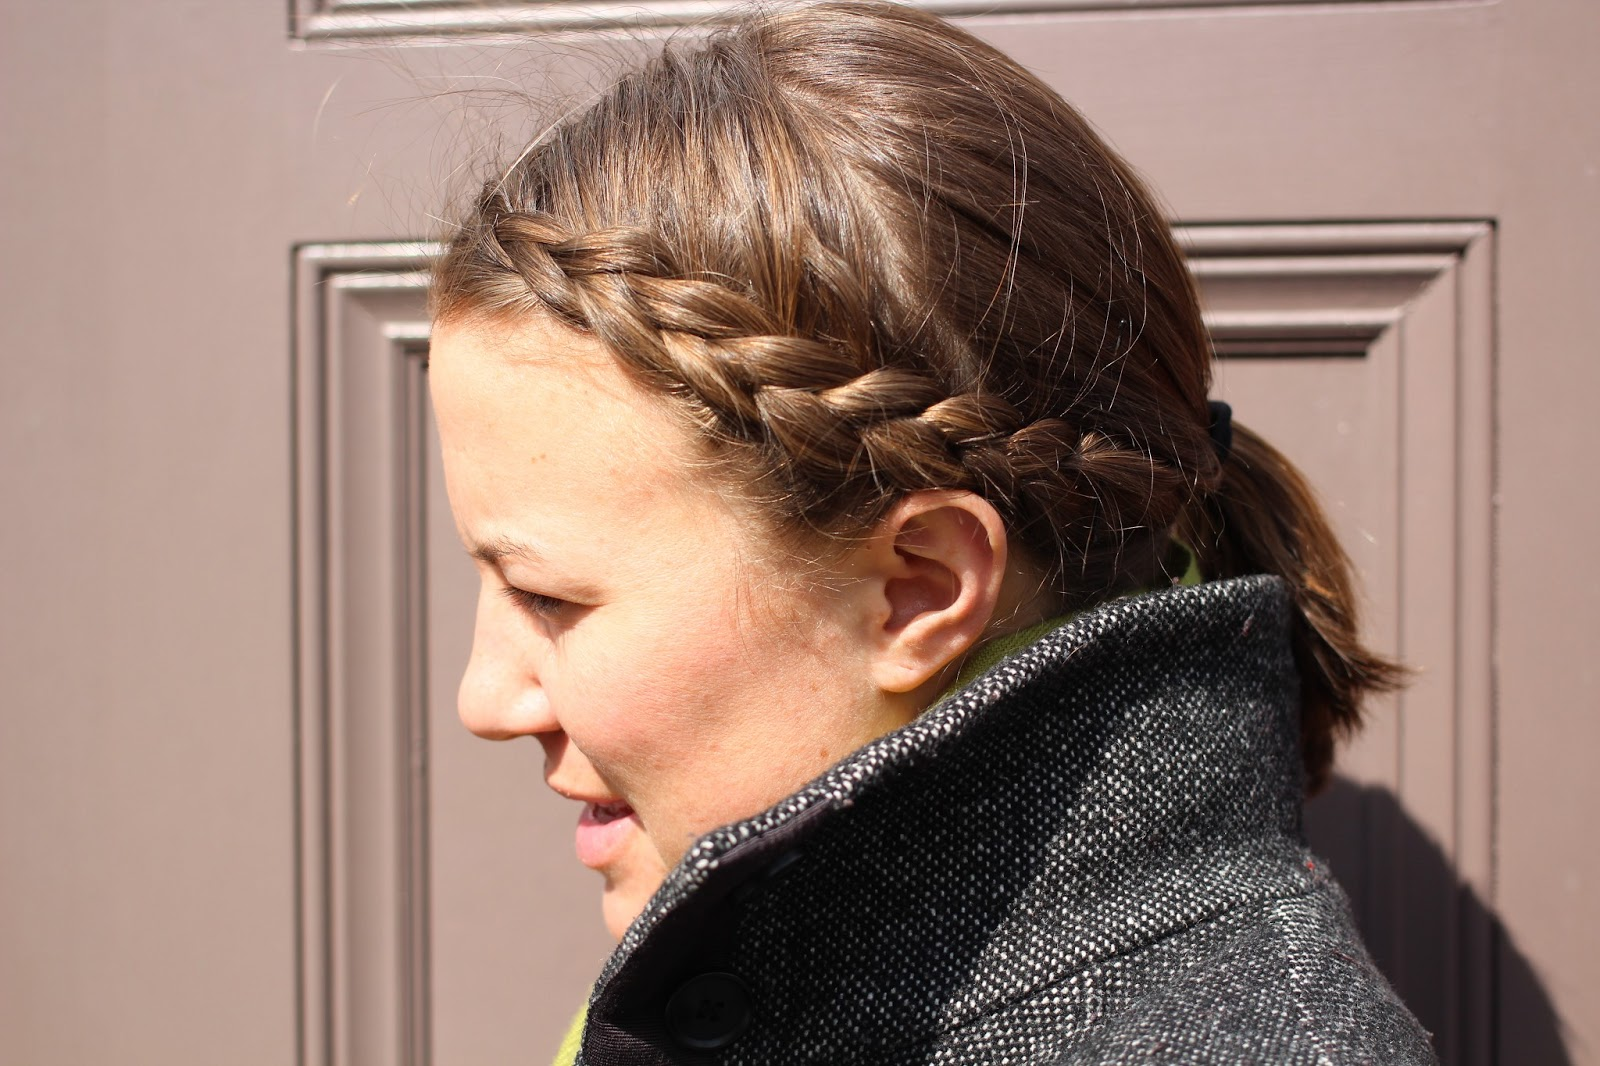 Creative Twisted Side Ponytail Is A Chic New Hairstyle For Spring And Summer